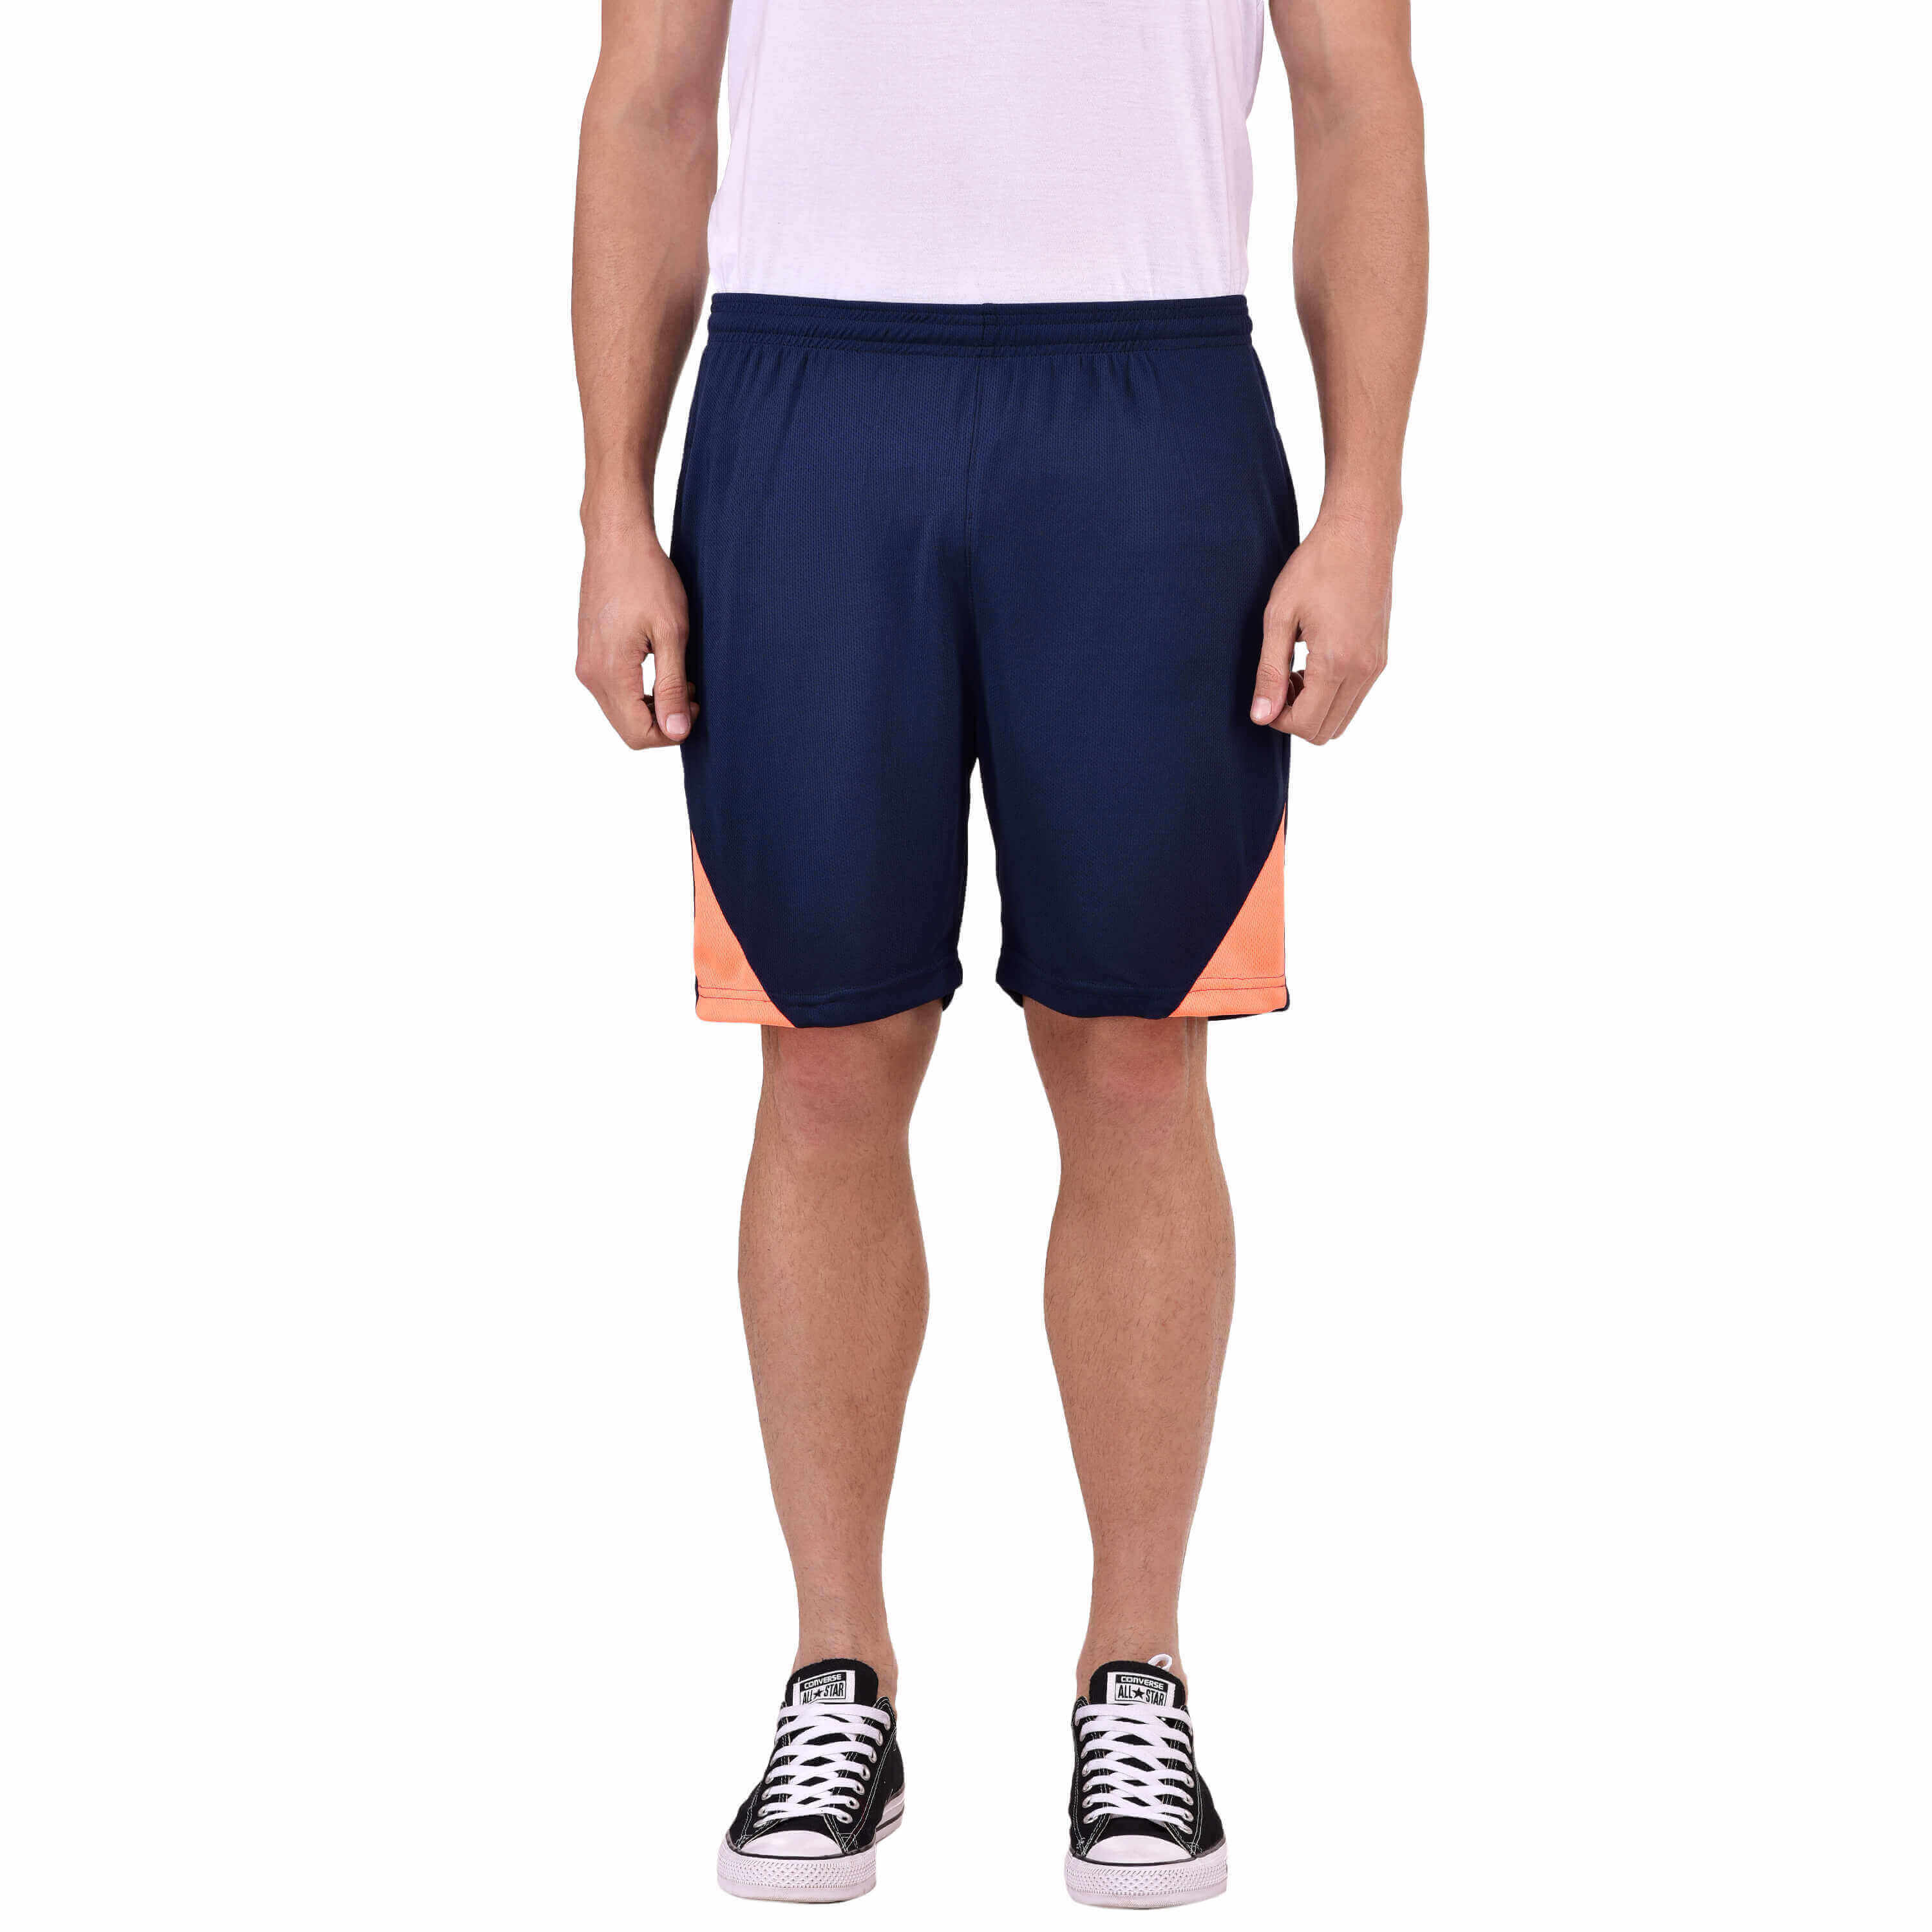 Football Shorts Manufacturers in Noida